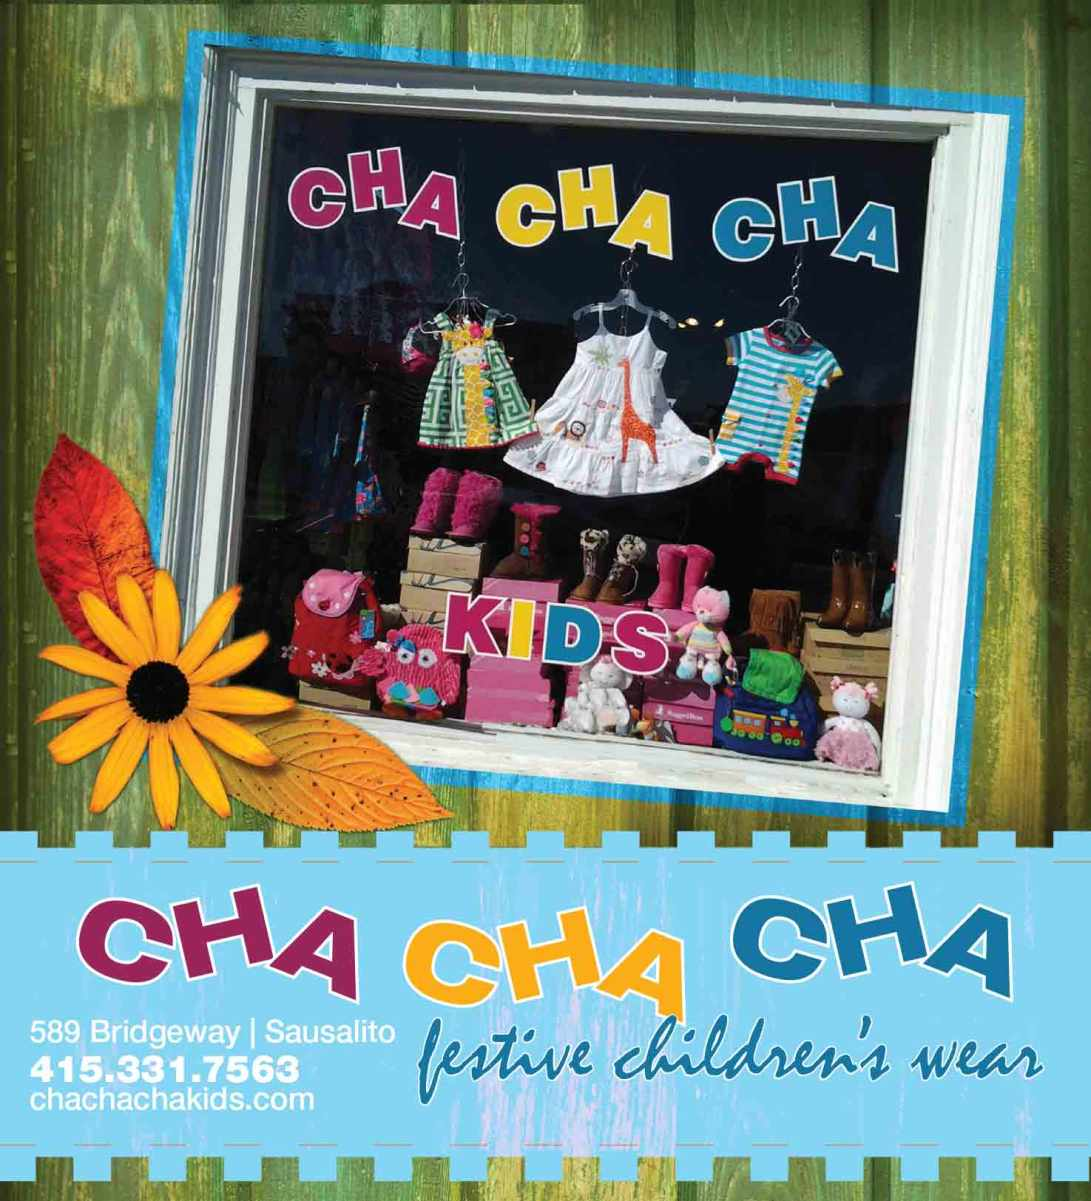 Print Ad - Cha Cha Cha Kids for Pacific Sun 2014